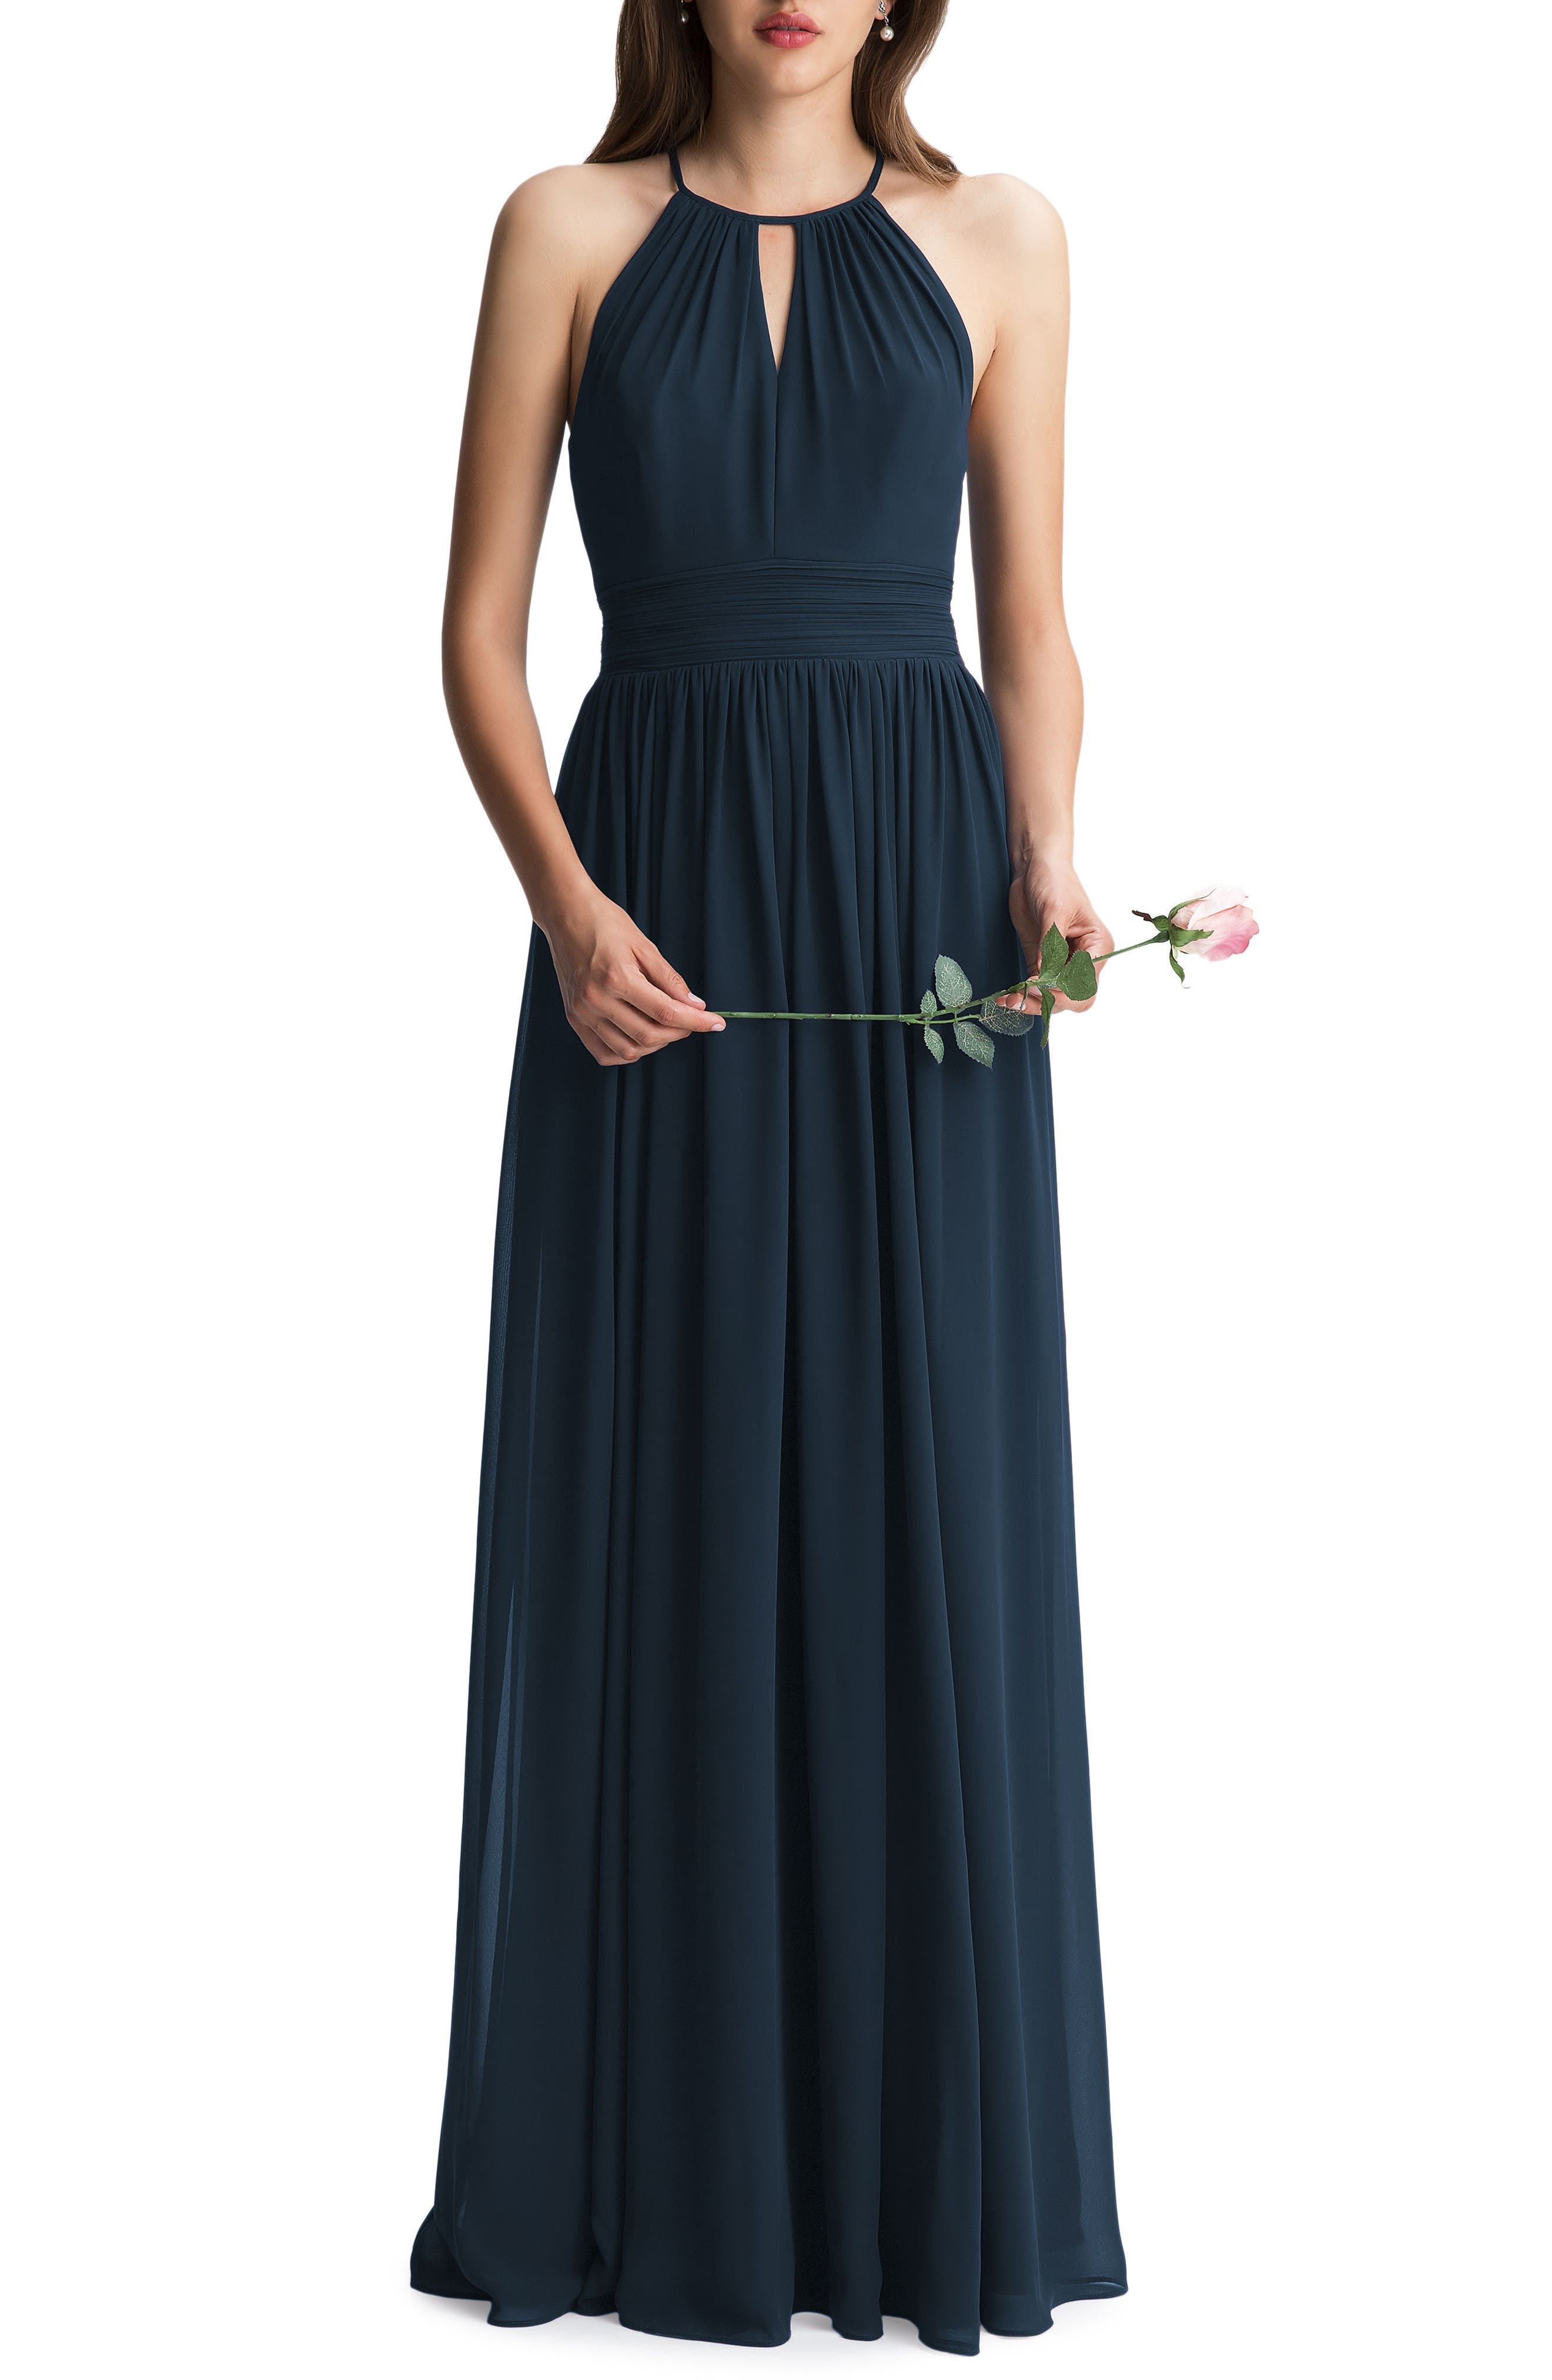 #LEVKOFF, Keyhole Chiffon A-Line Gown, Main thumbnail 1, color, NAVY